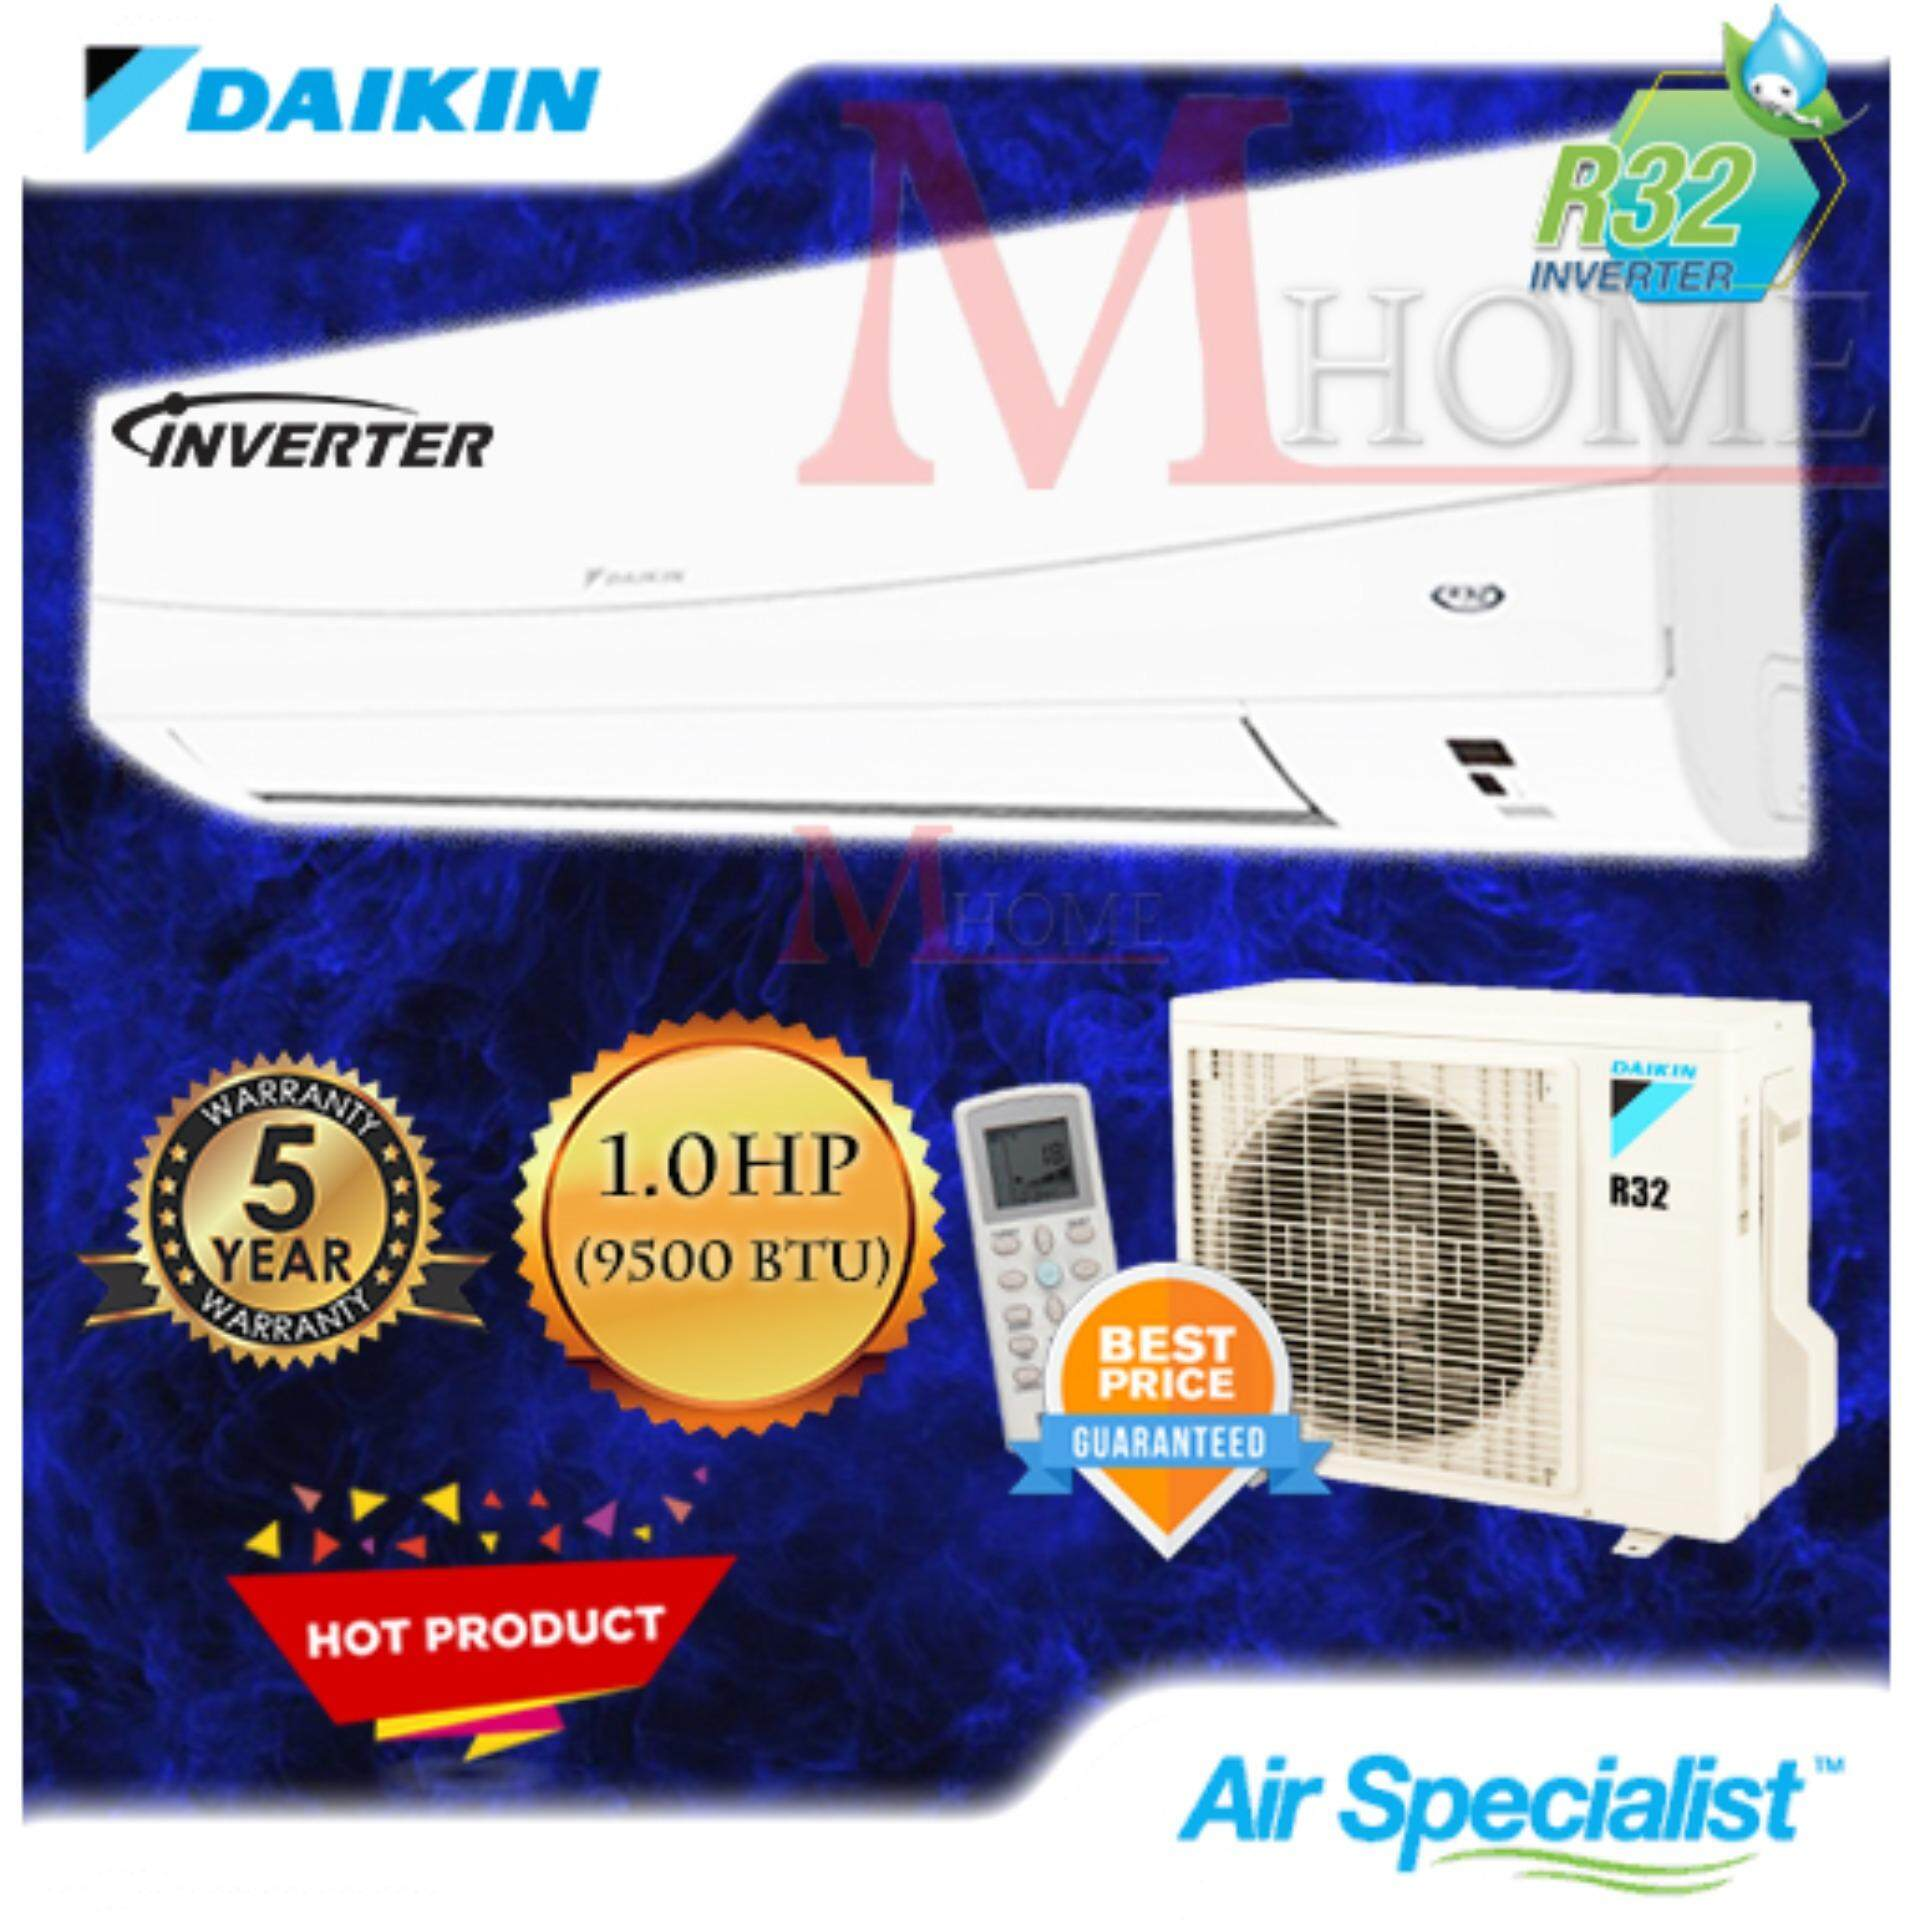 (NEW) Daikin 1 0hp Inverter Wall Mounted Air Conditioner  FTKG28QV1L/RKG28FV1D (R32 Gas)